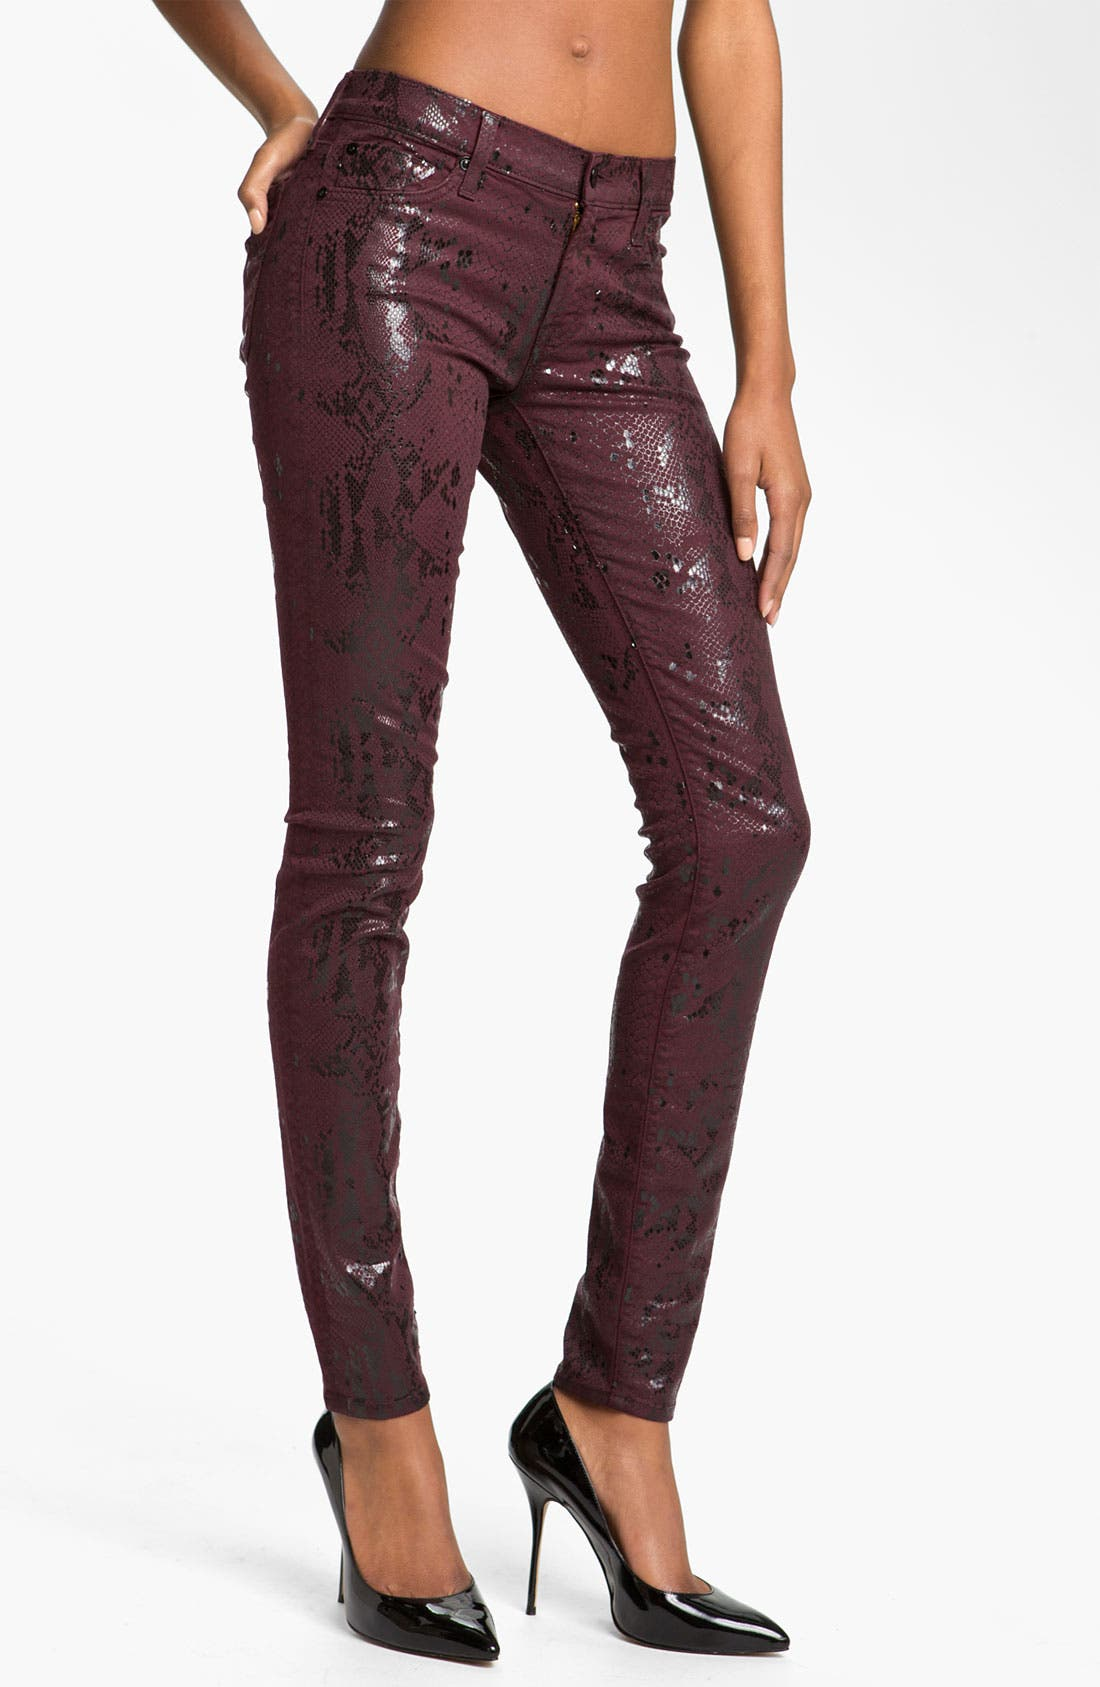 Alternate Image 1 Selected - 7 For All Mankind® 'The Skinny' Print Stretch Jeans (Burgundy Snake)